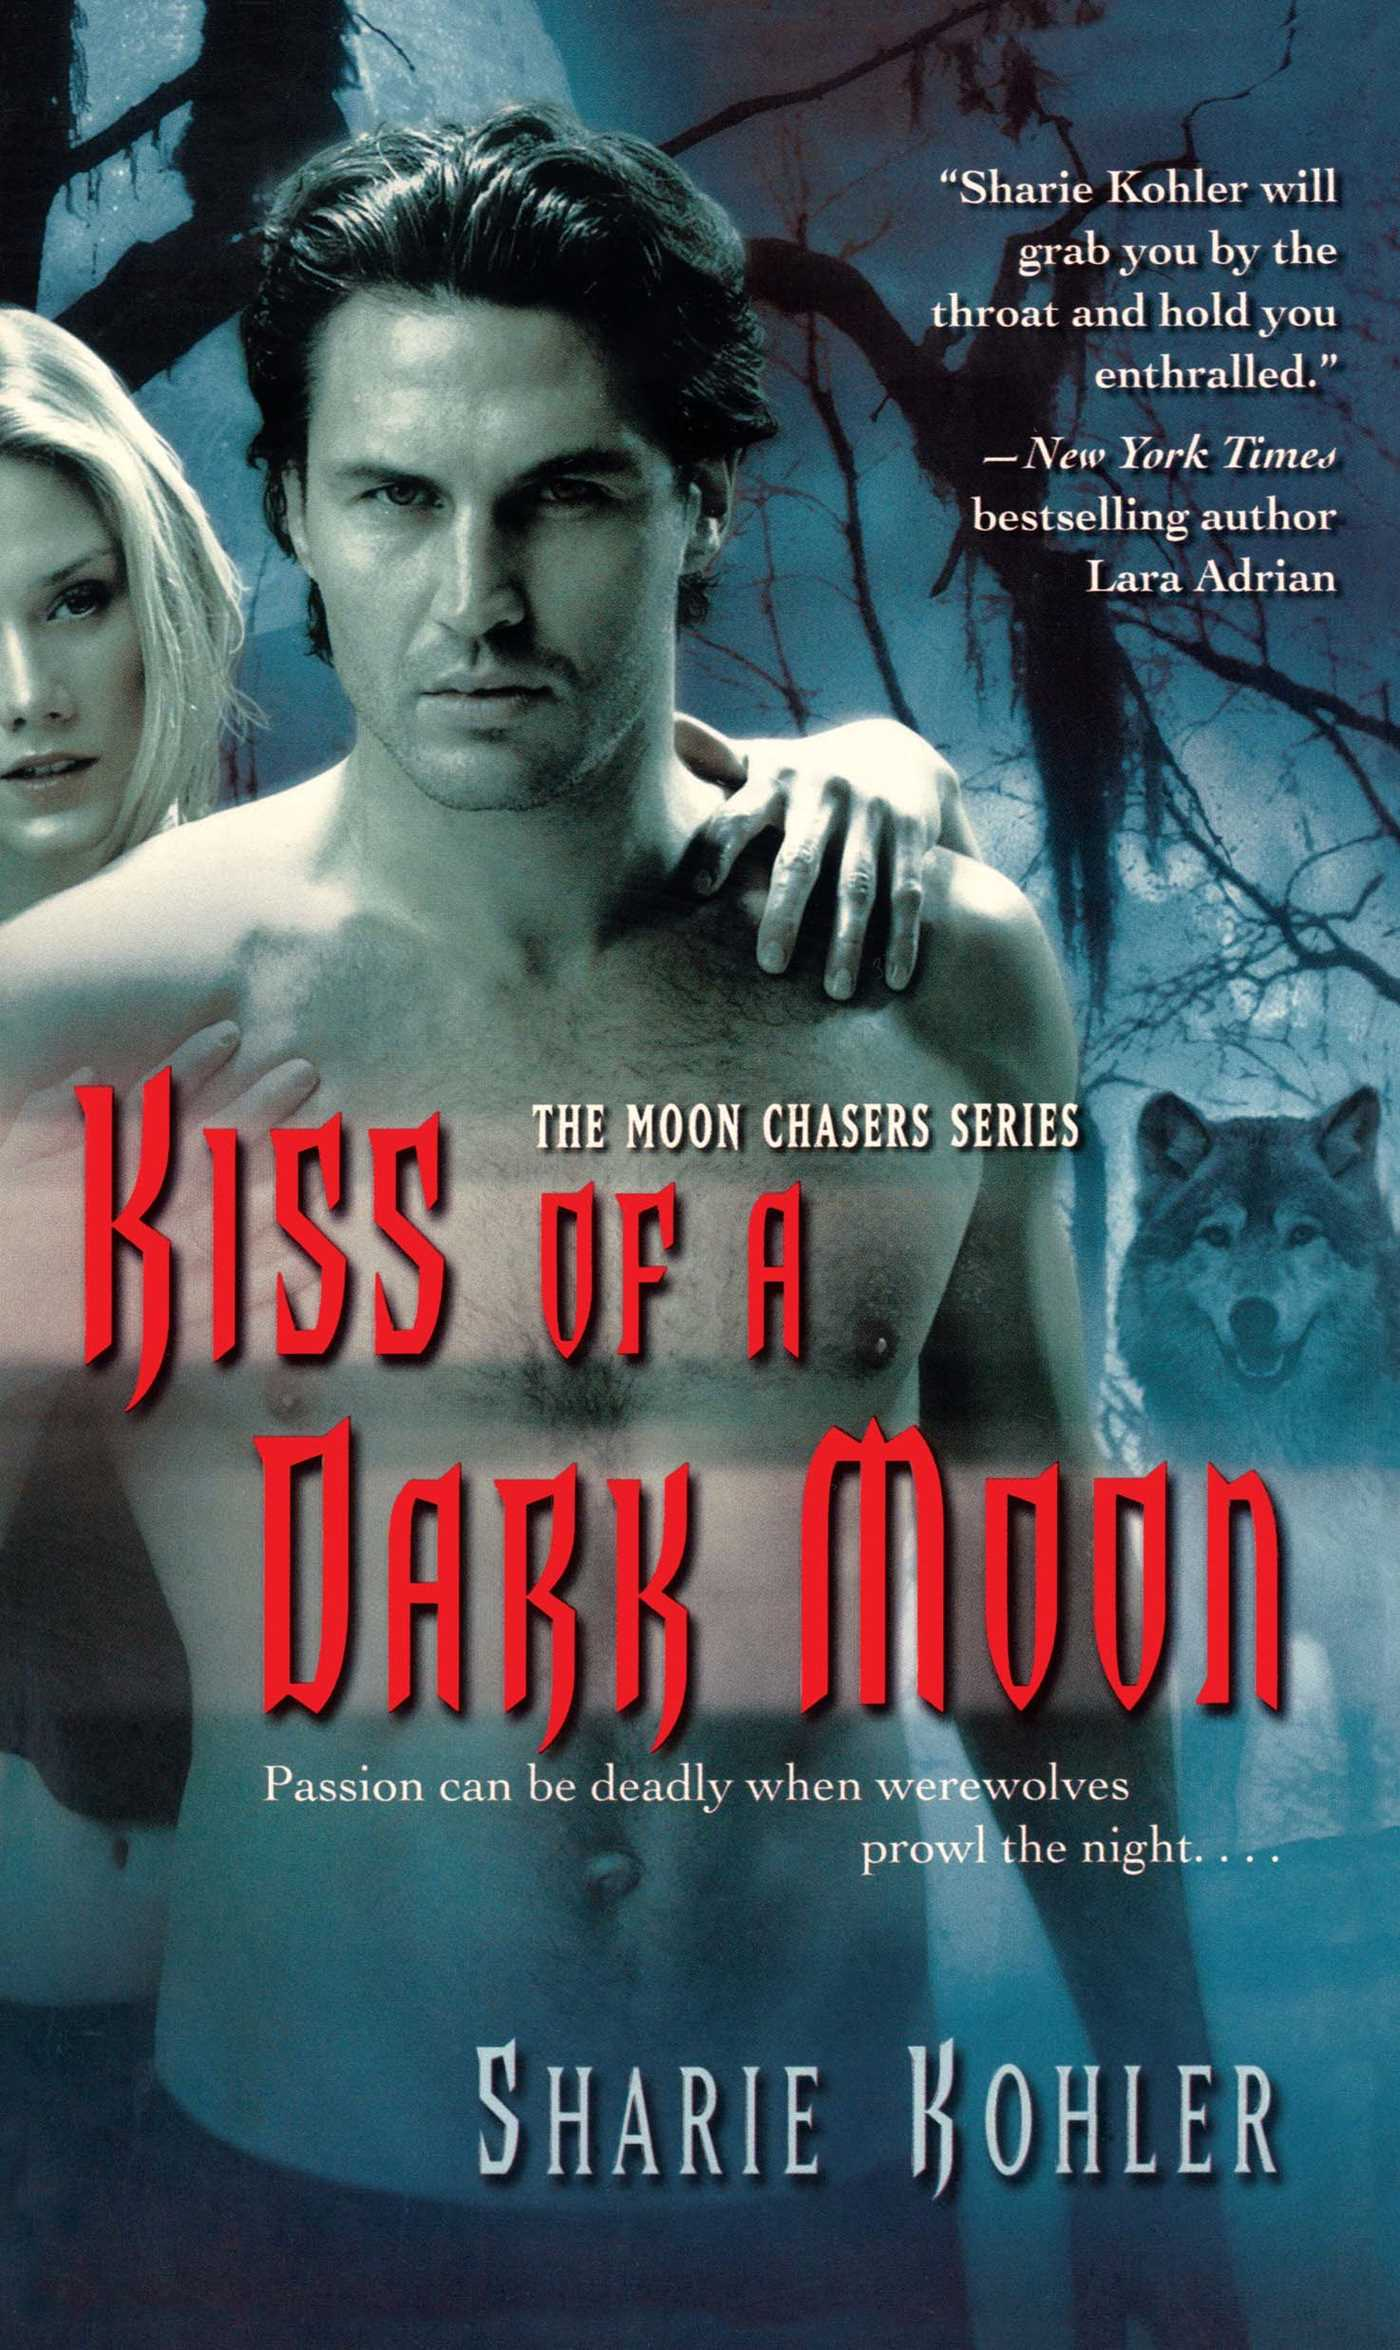 Kiss of a dark moon 9781501104374 hr